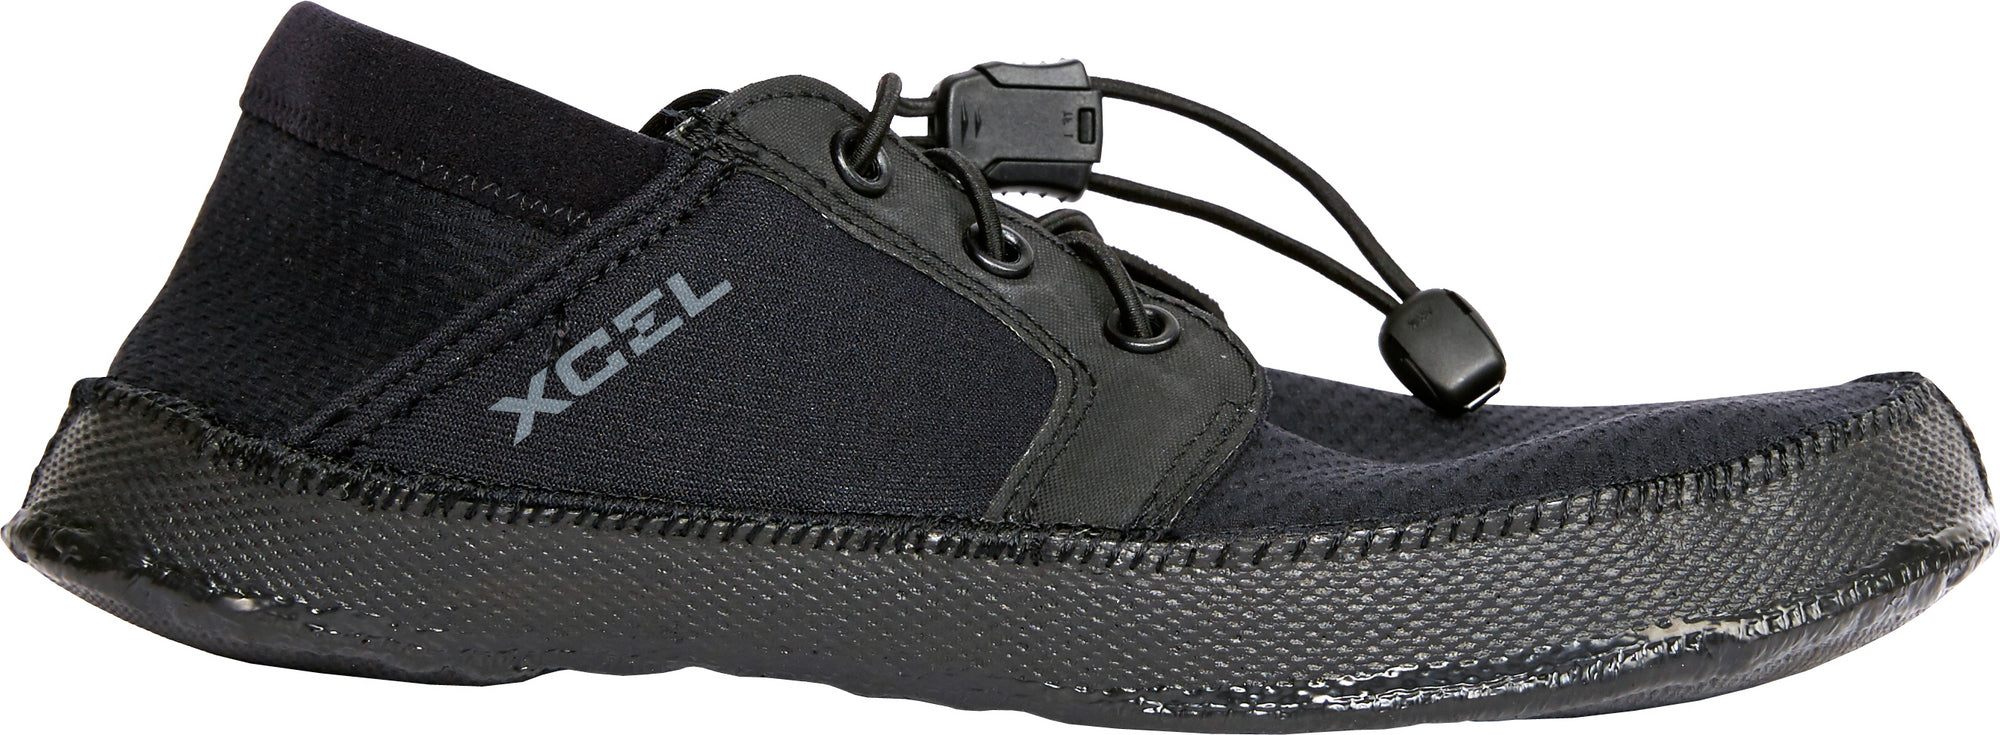 Xcel Ventiprene Boot - Black